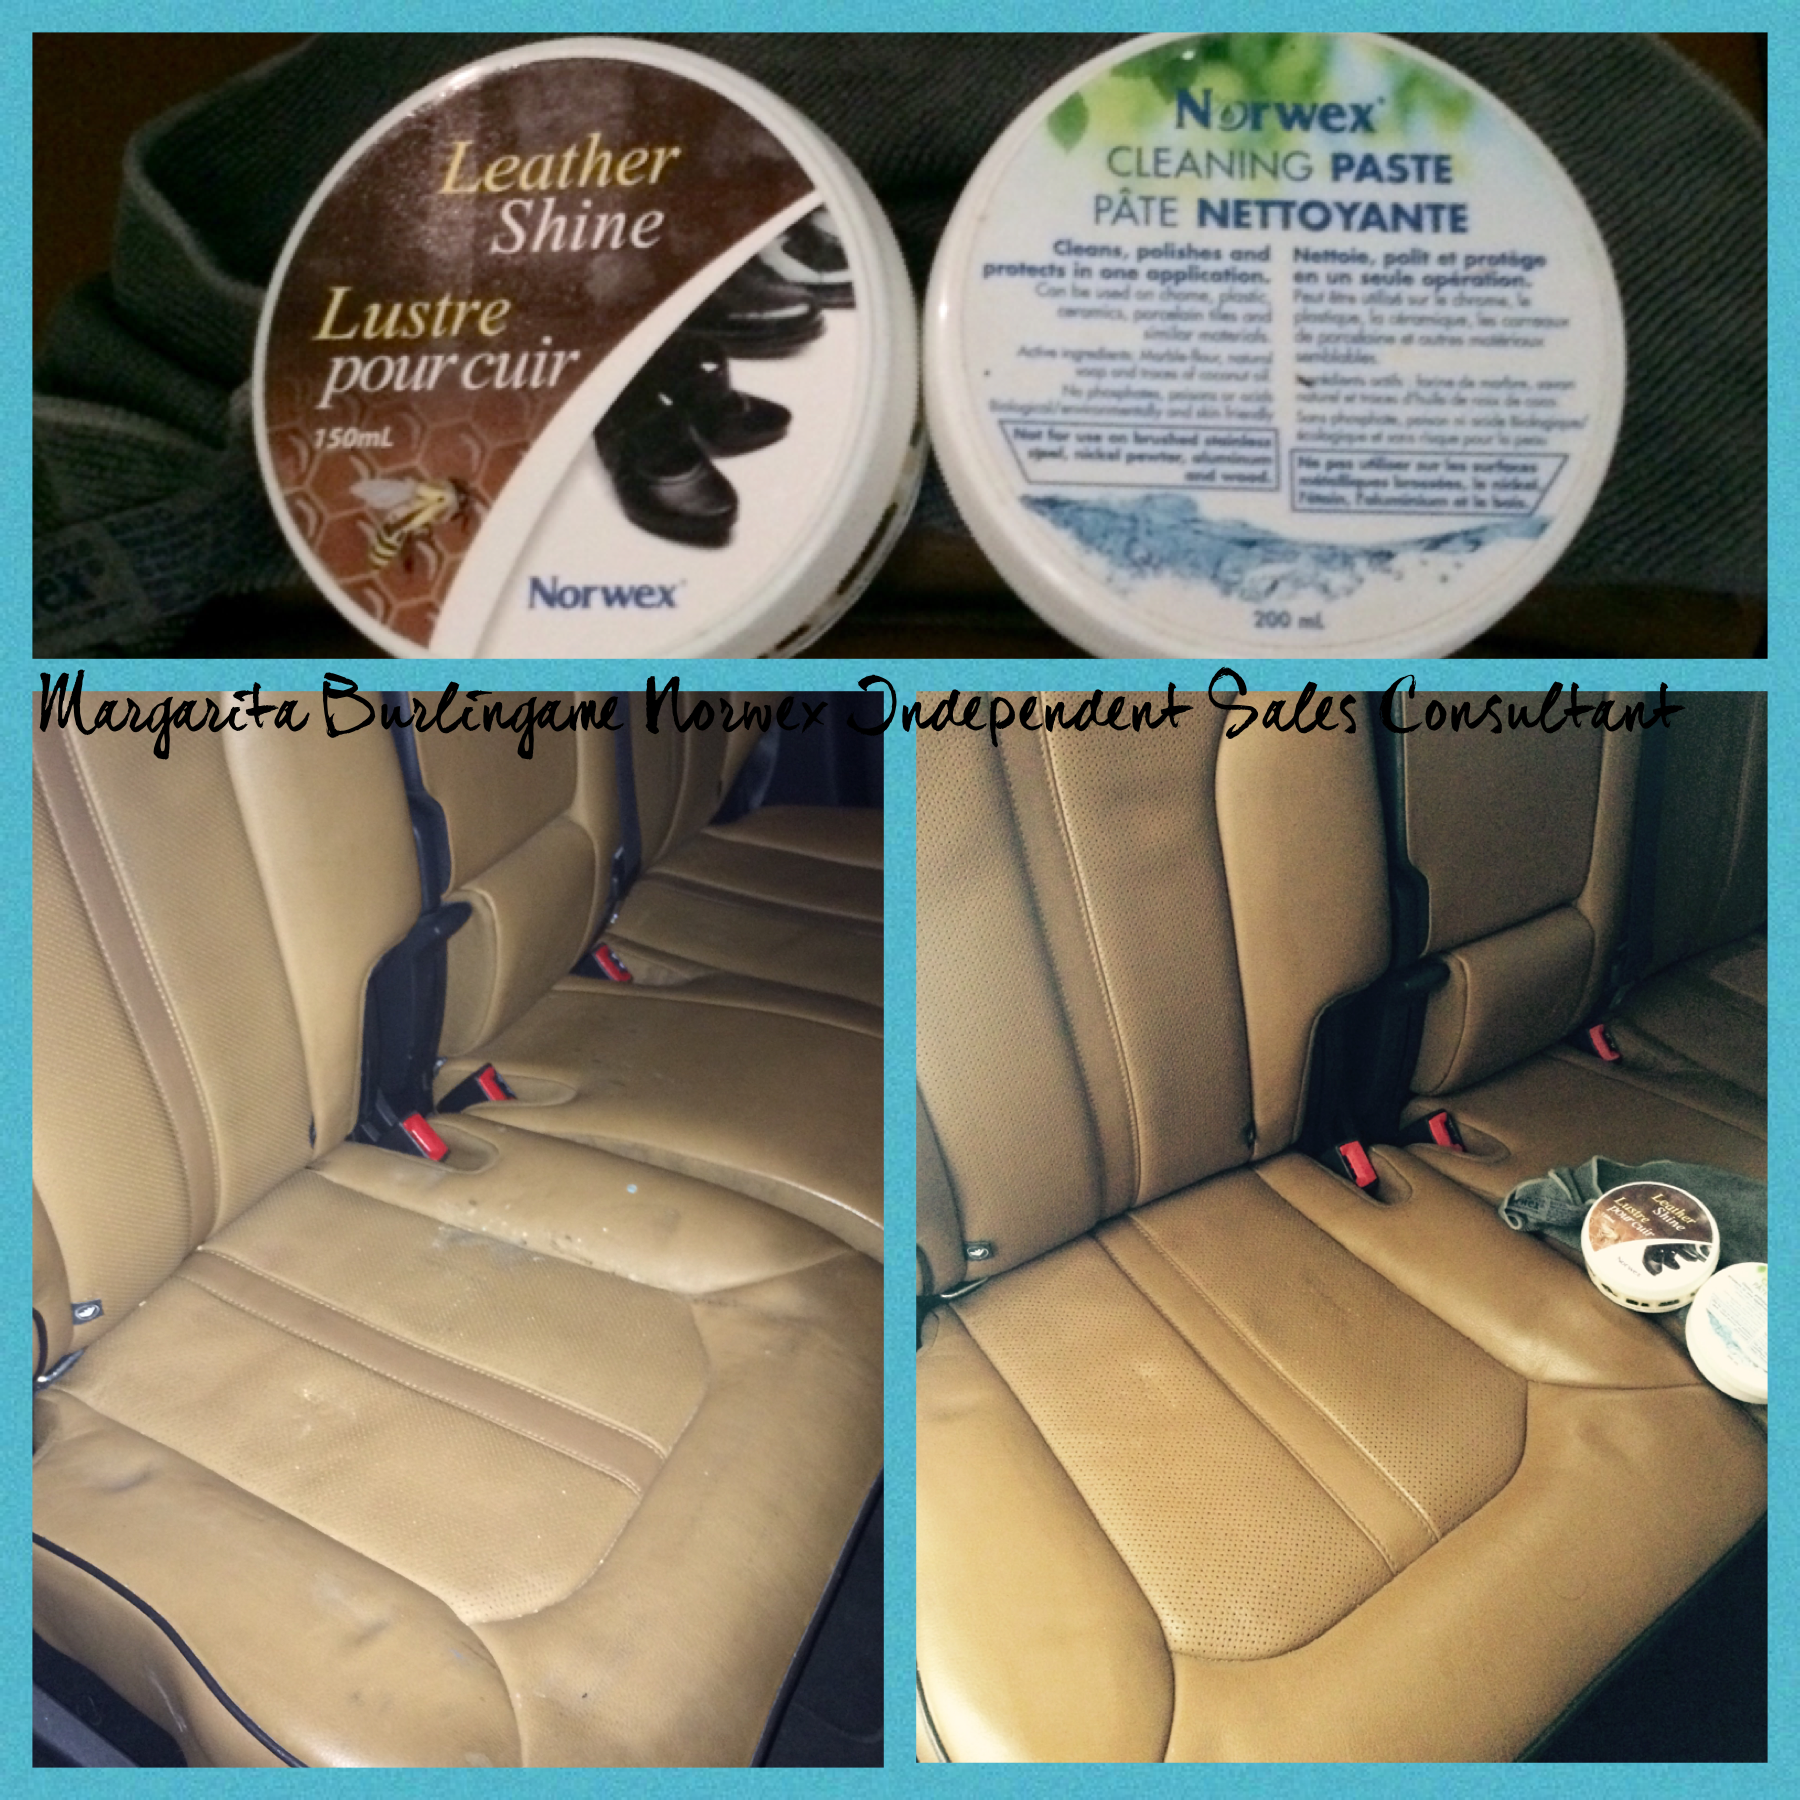 6c94443e2412432fae70c056573526c7 - How To Get Smell Out Of Leather Car Seats